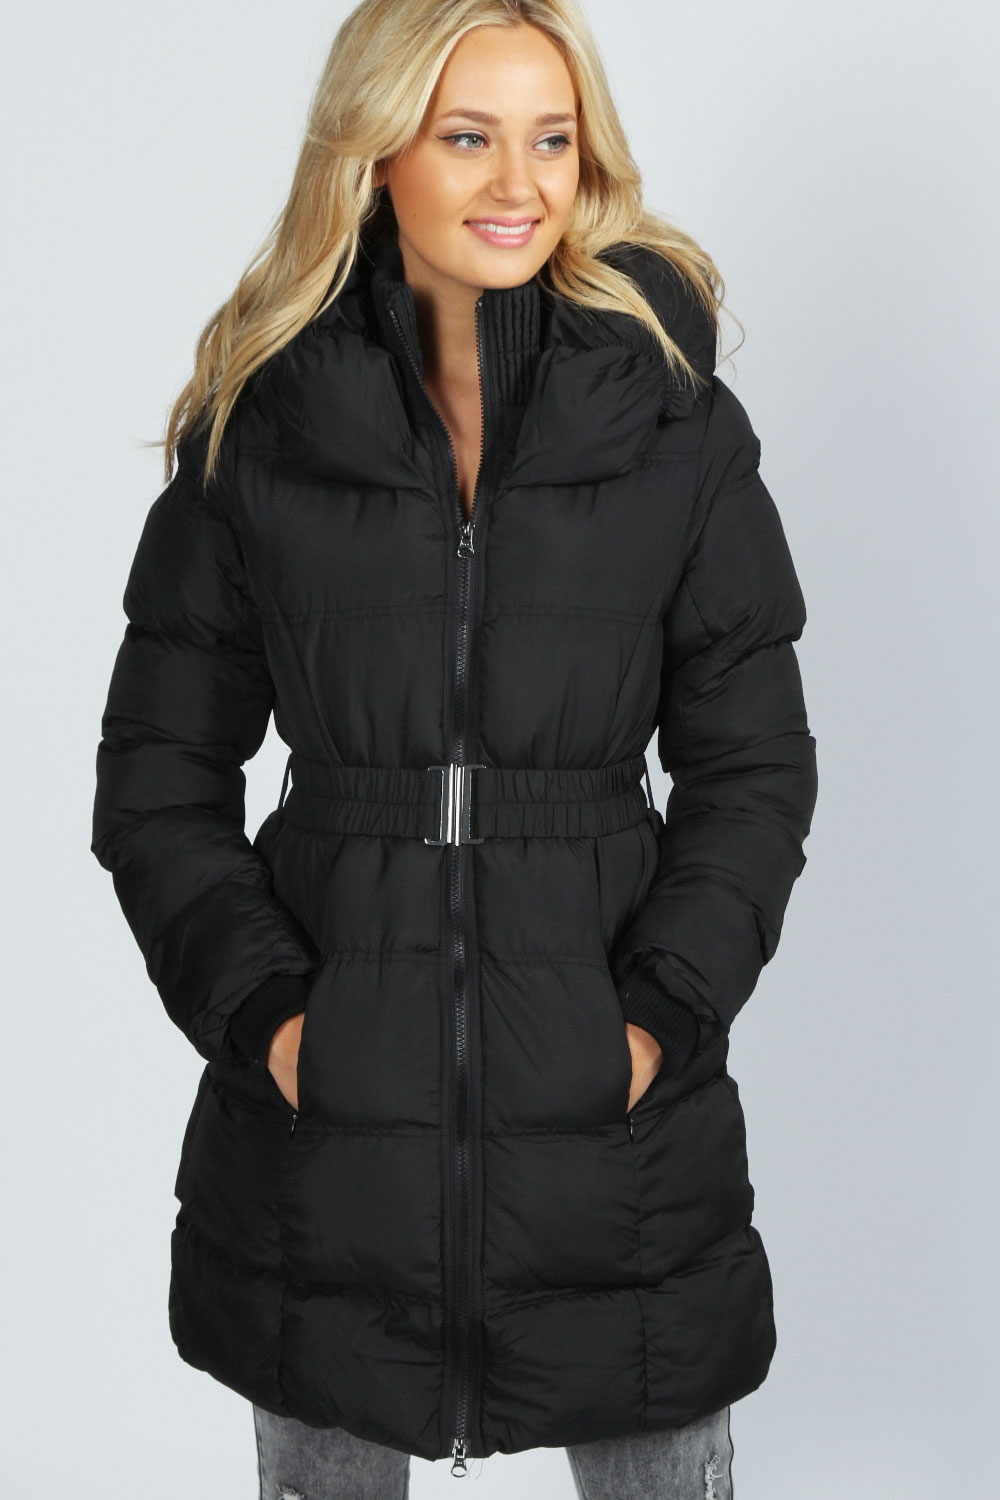 Boohoo Carrie High Neck Belted Padded Coat In Black | eBay